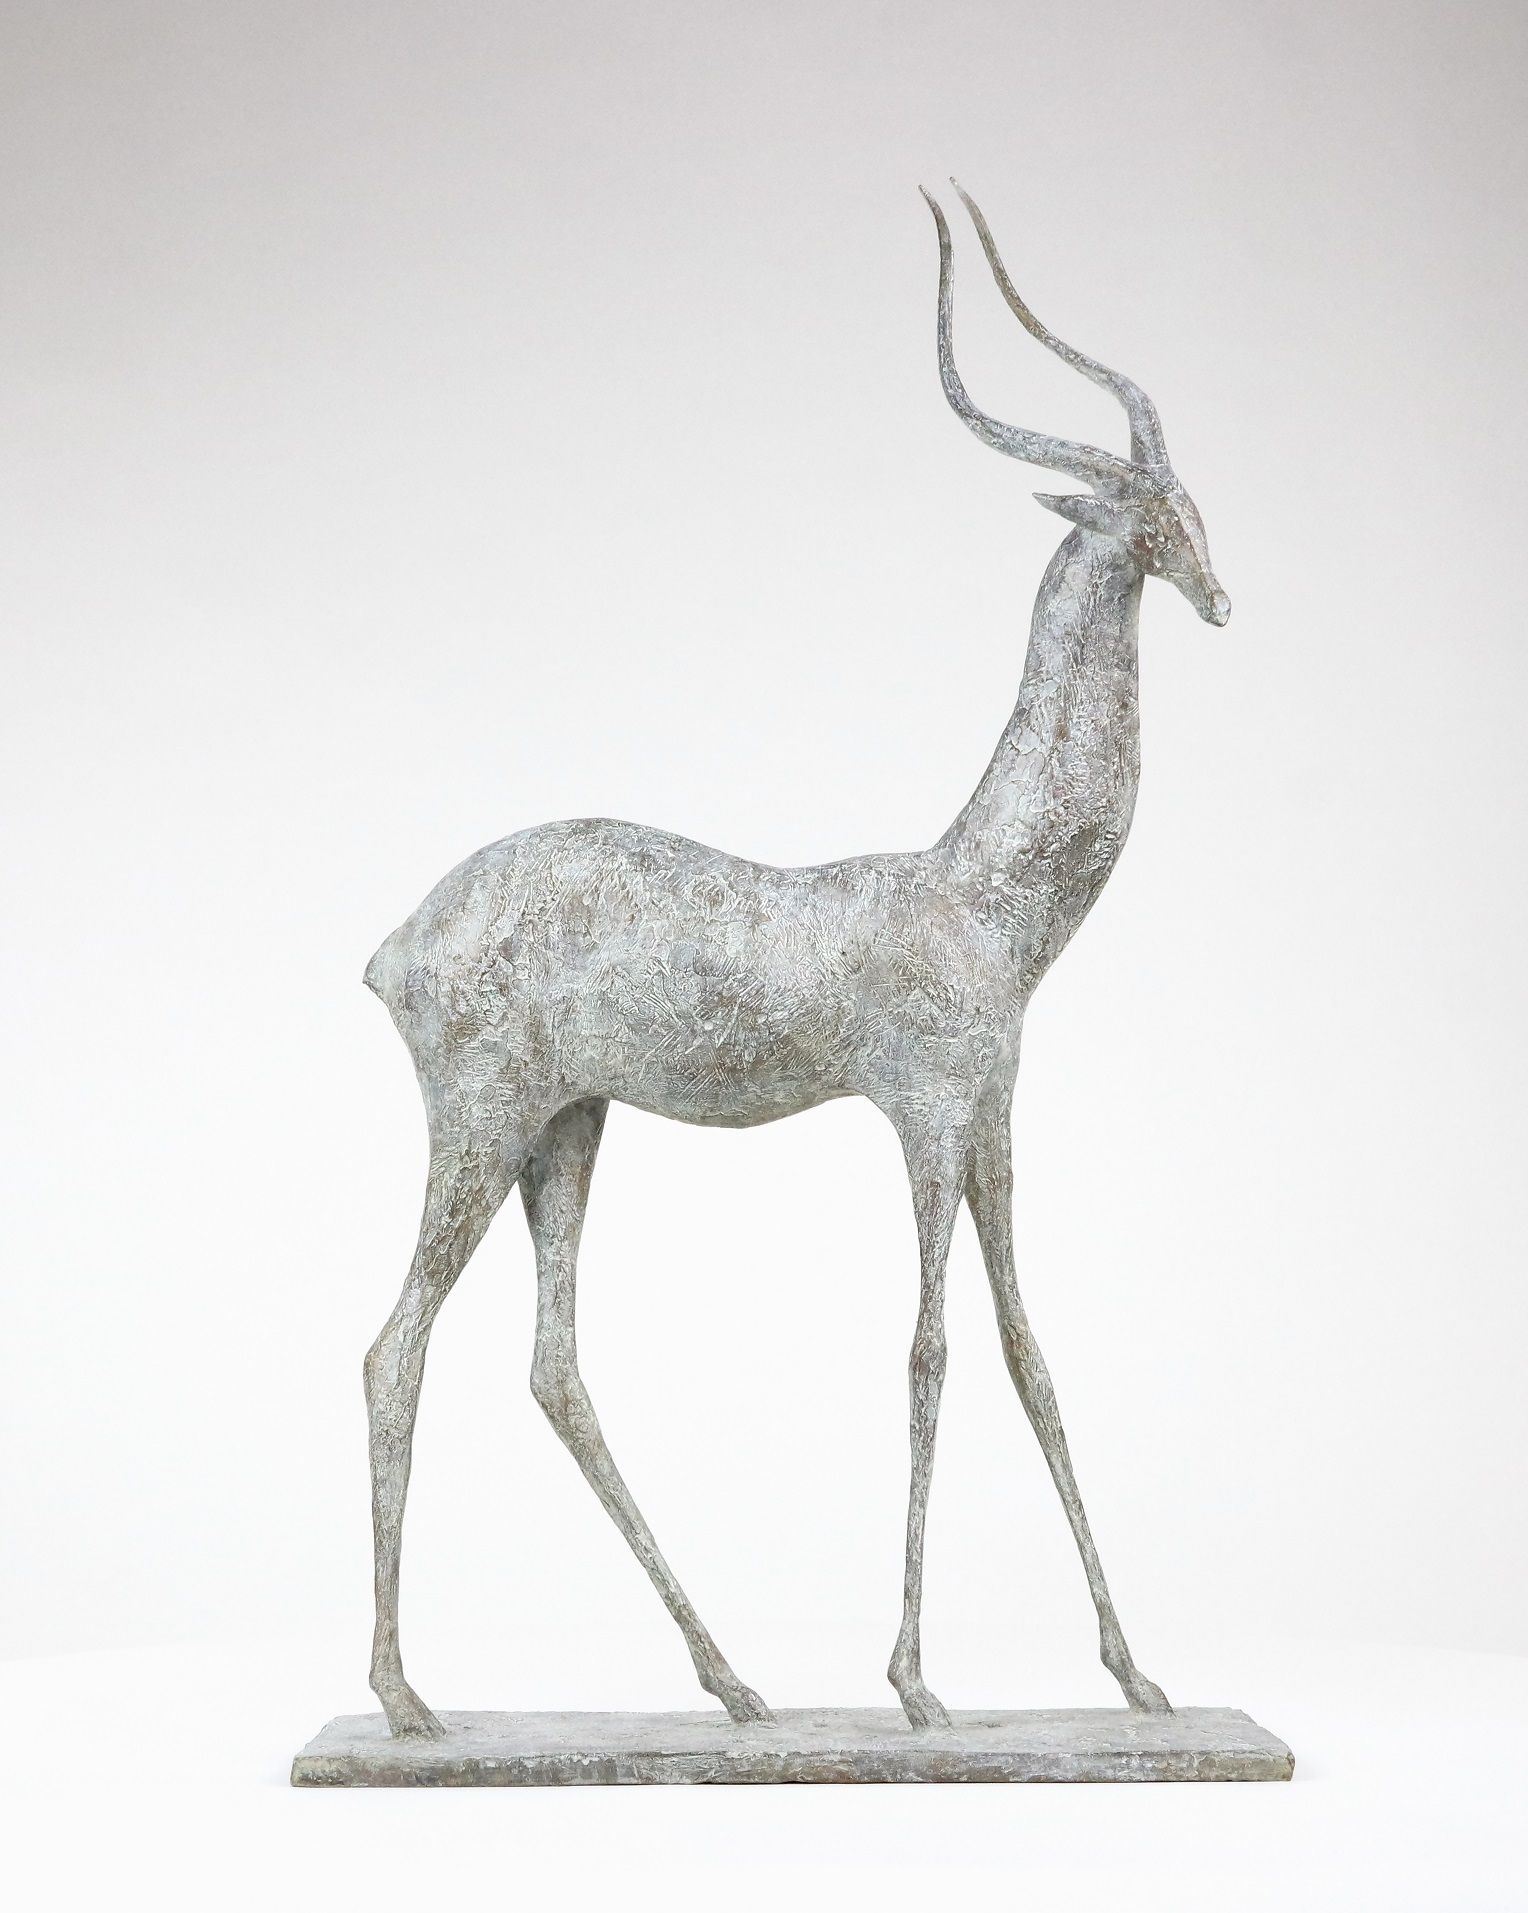 Gazelle I,Pierre Yermia,Sculpture